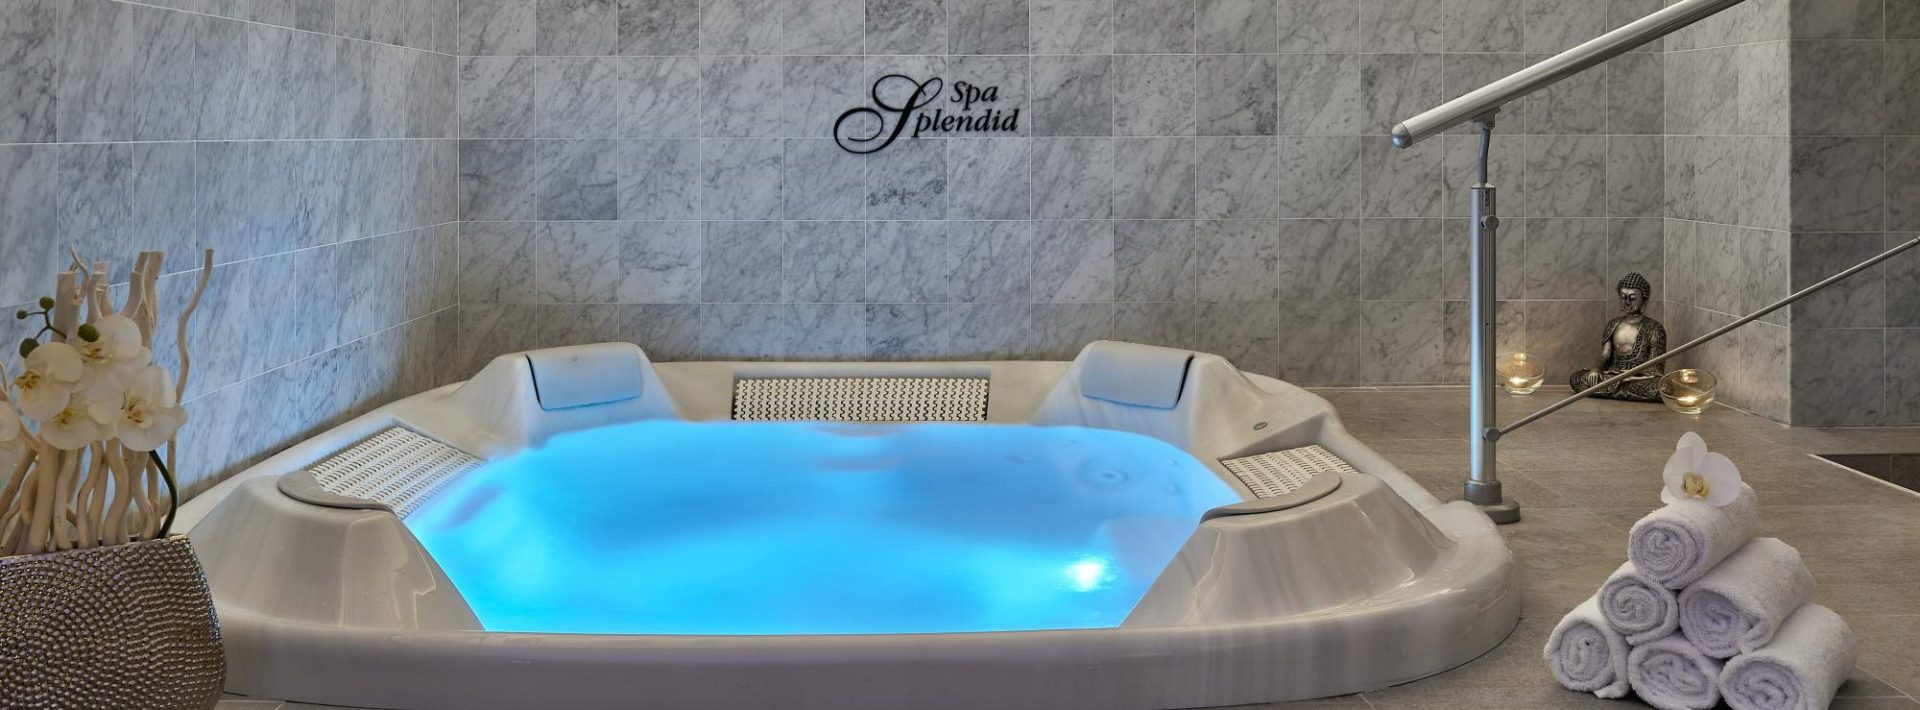 Splendid Hôtel & Spa - a unique and unforgettable experience in Nice ...